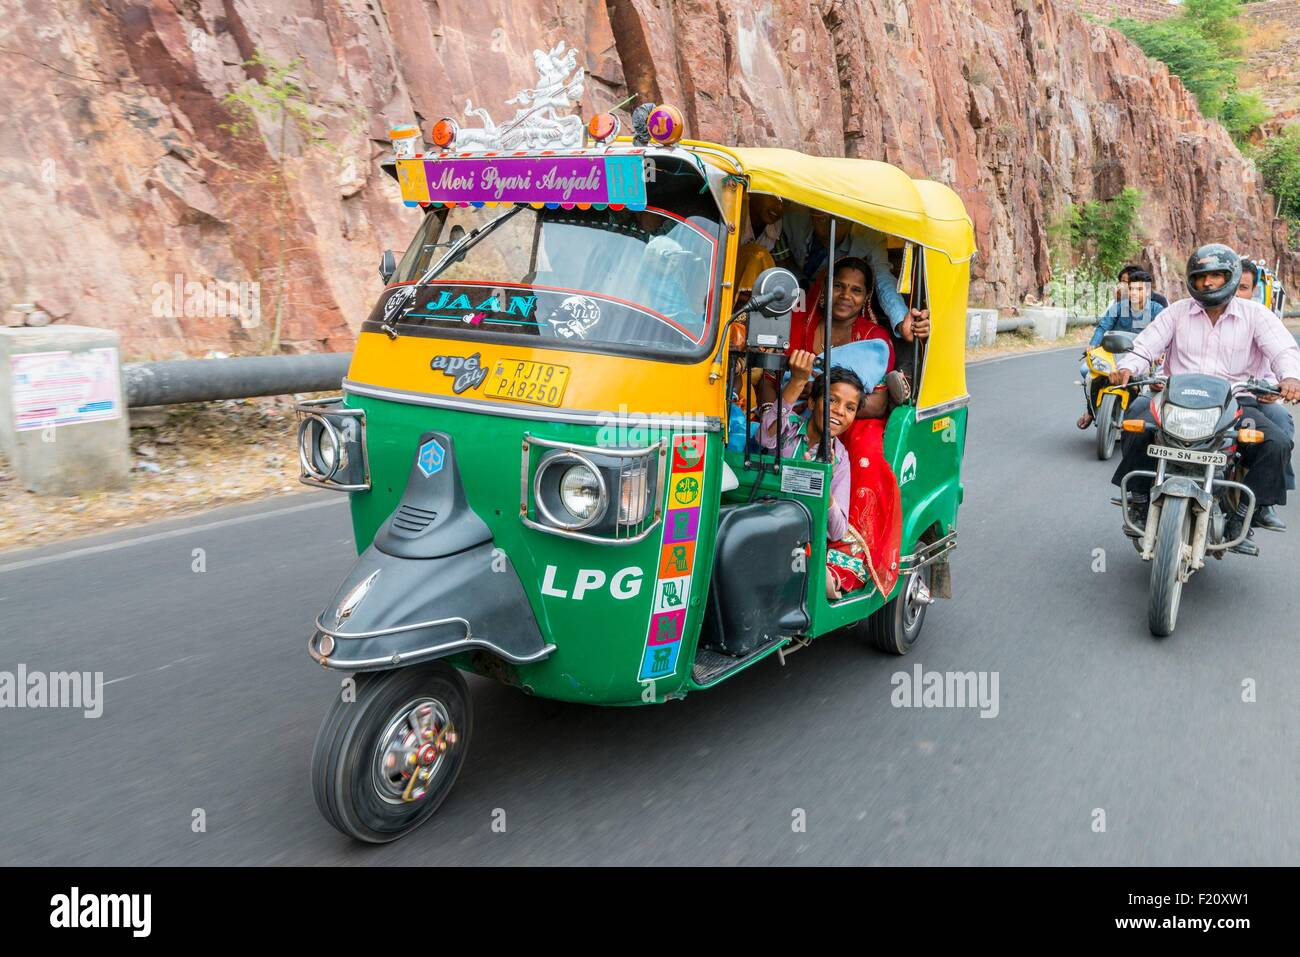 tuktuk india stock photos & tuktuk india stock images - alamy